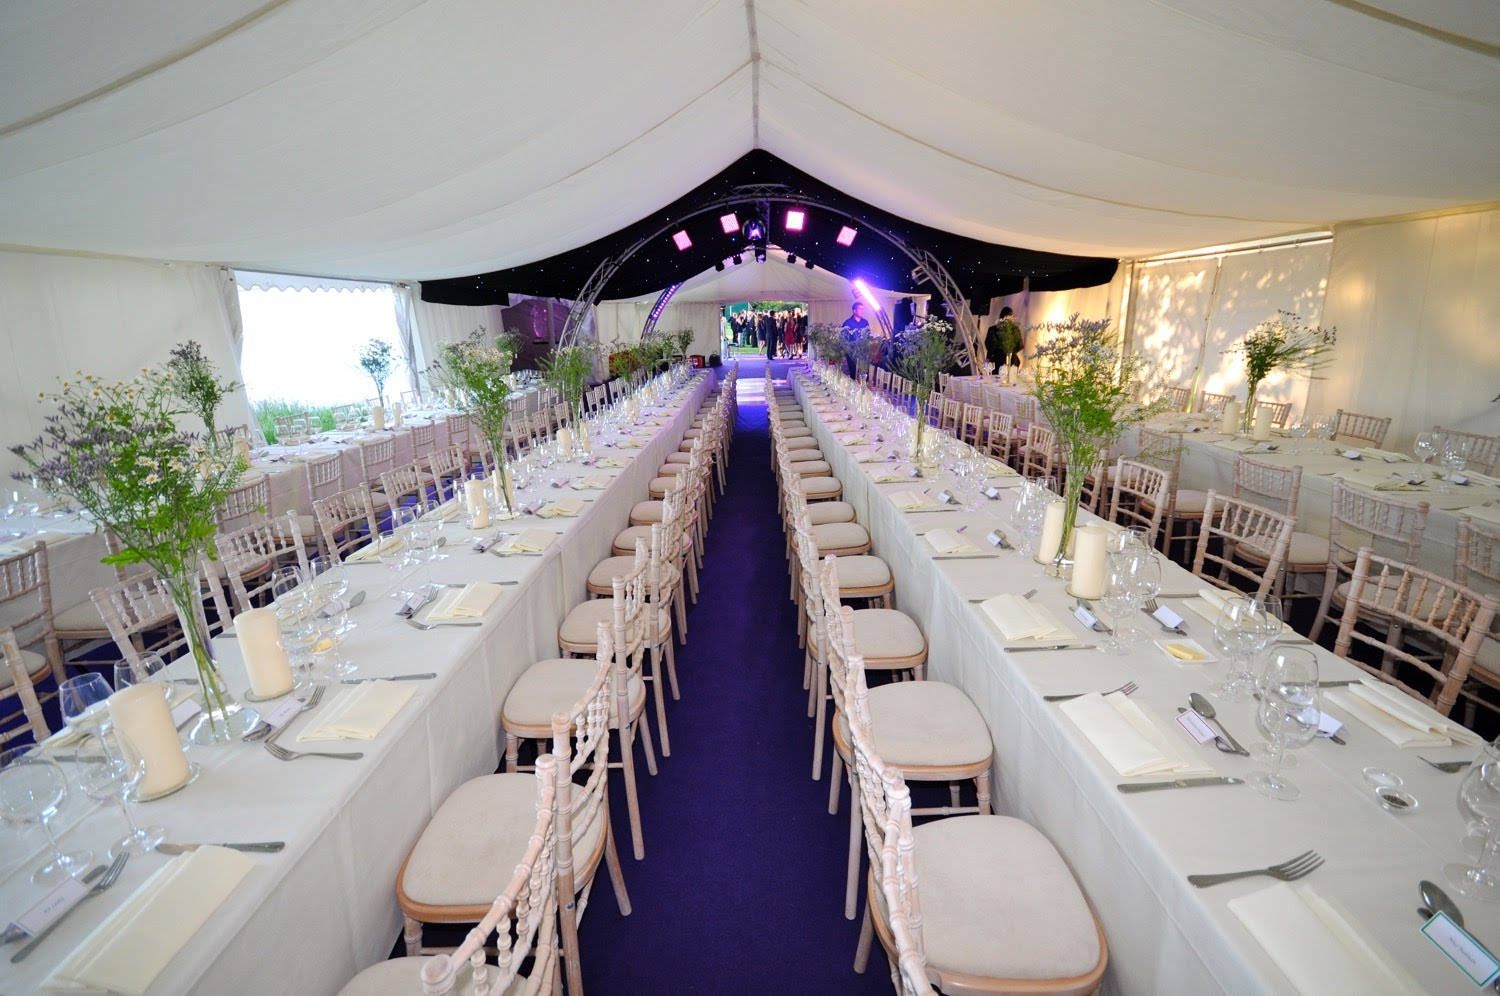 Tables set for lunch inside a marquee